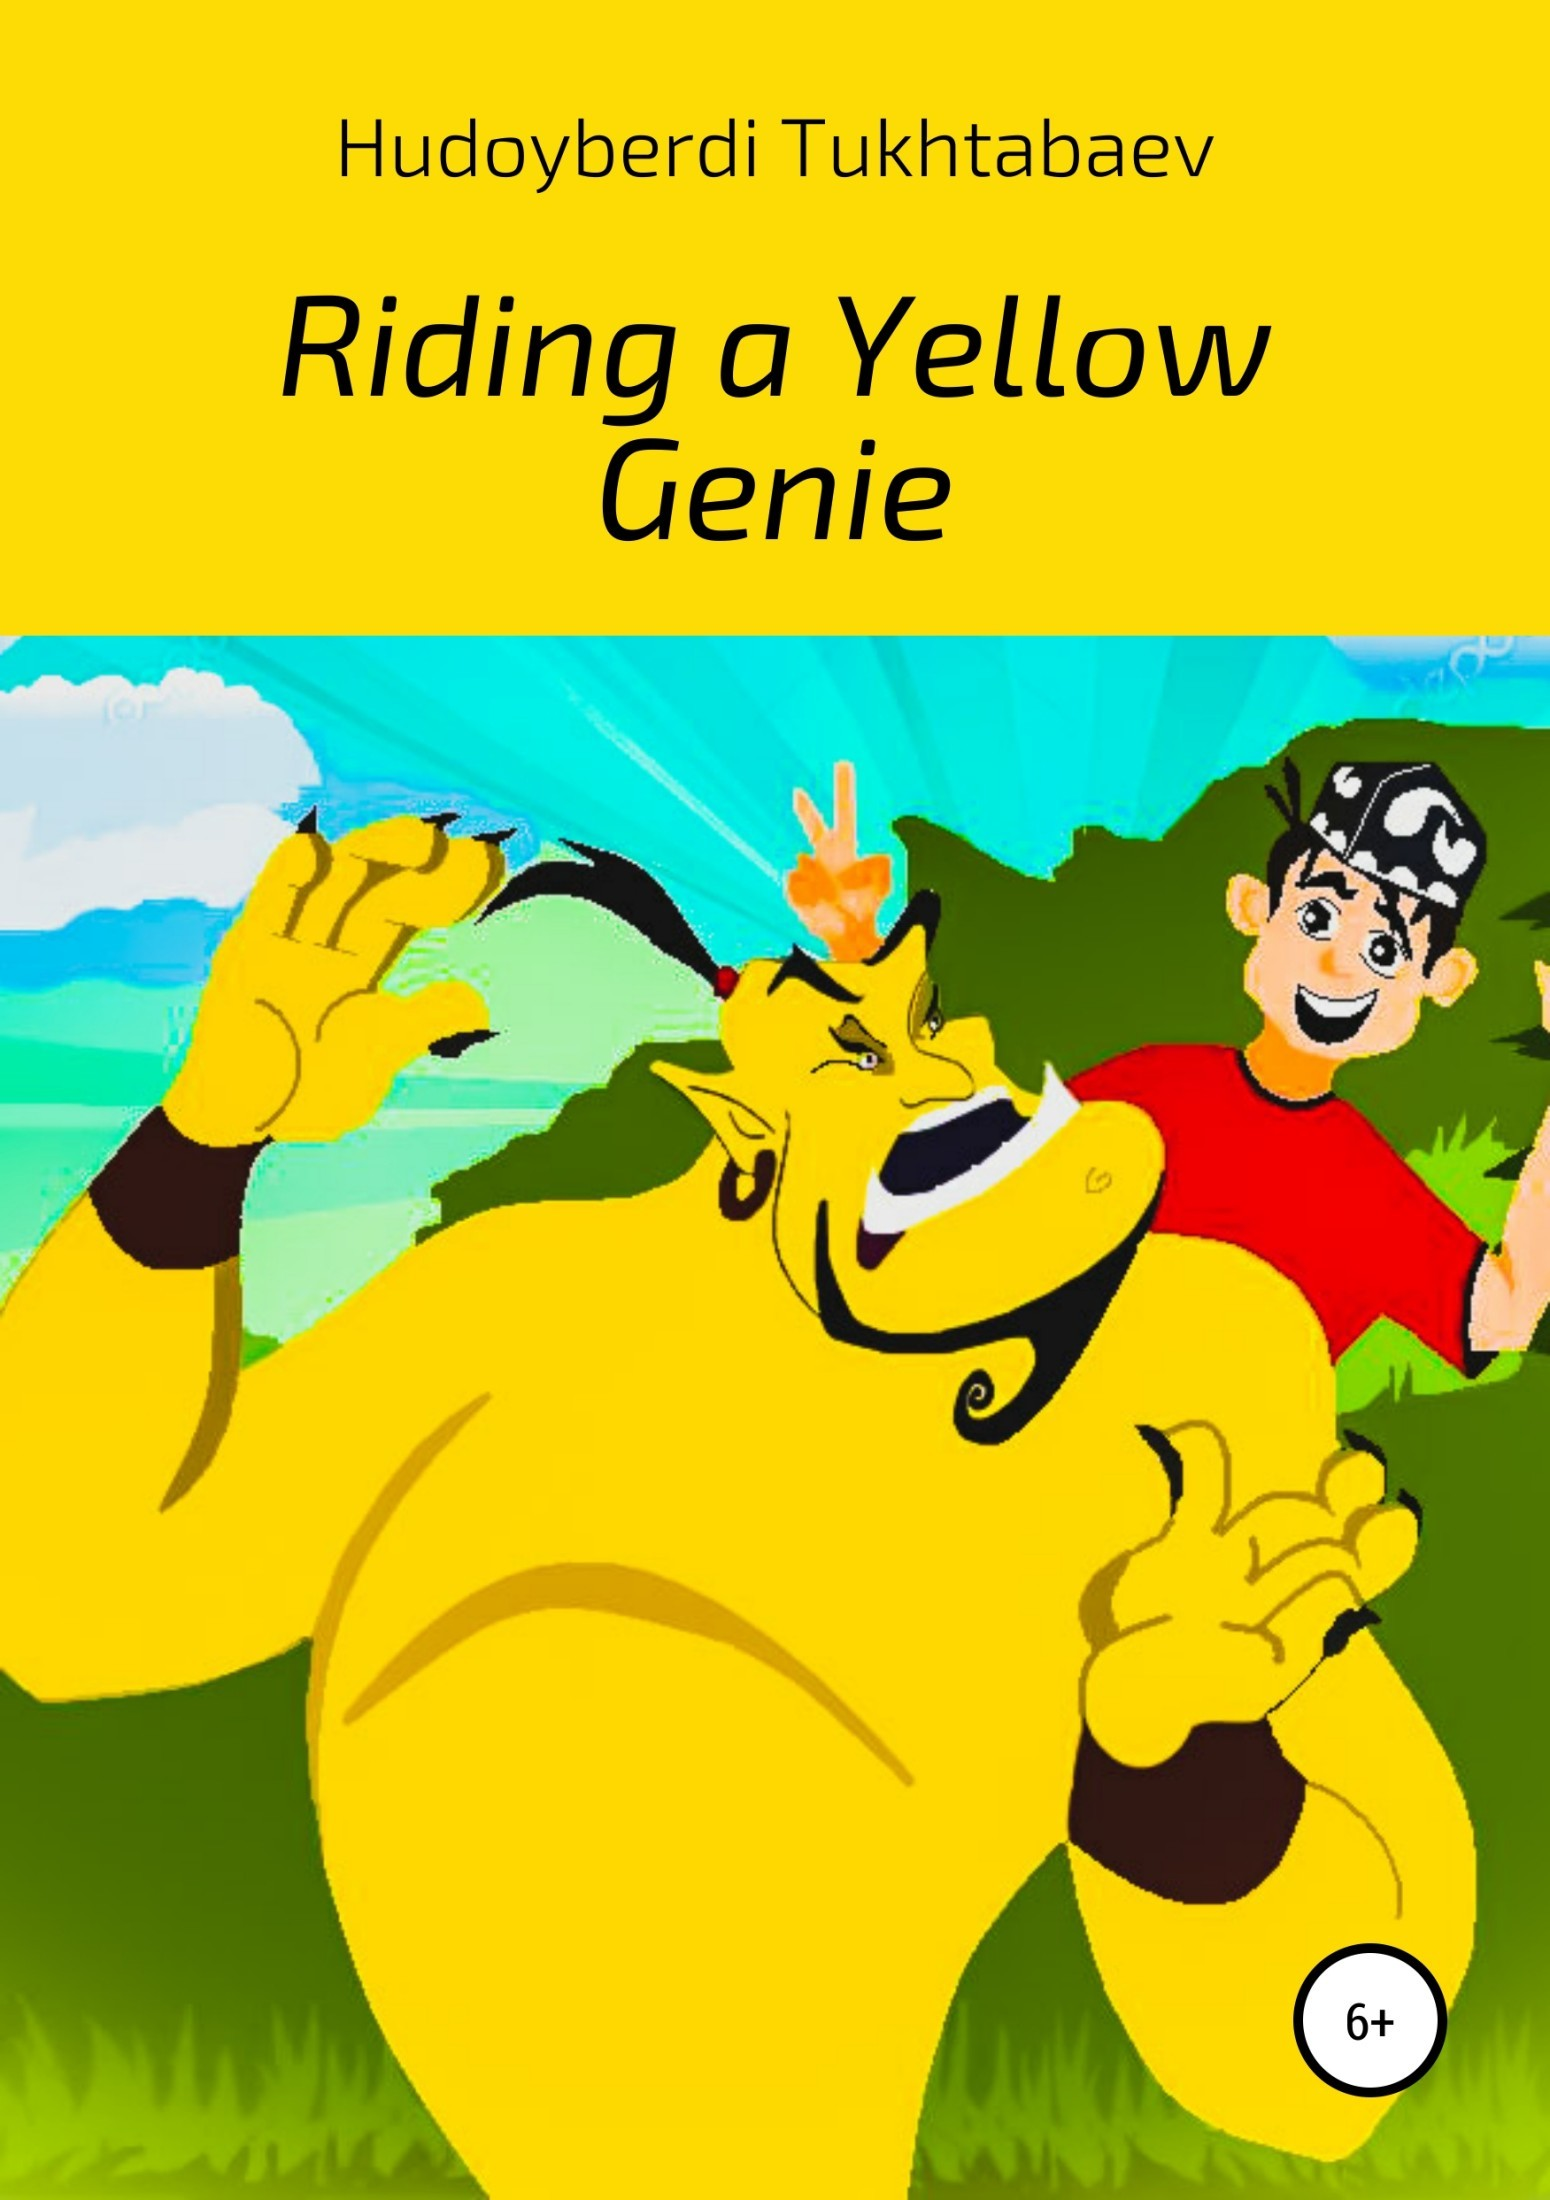 Riding a yellow genie